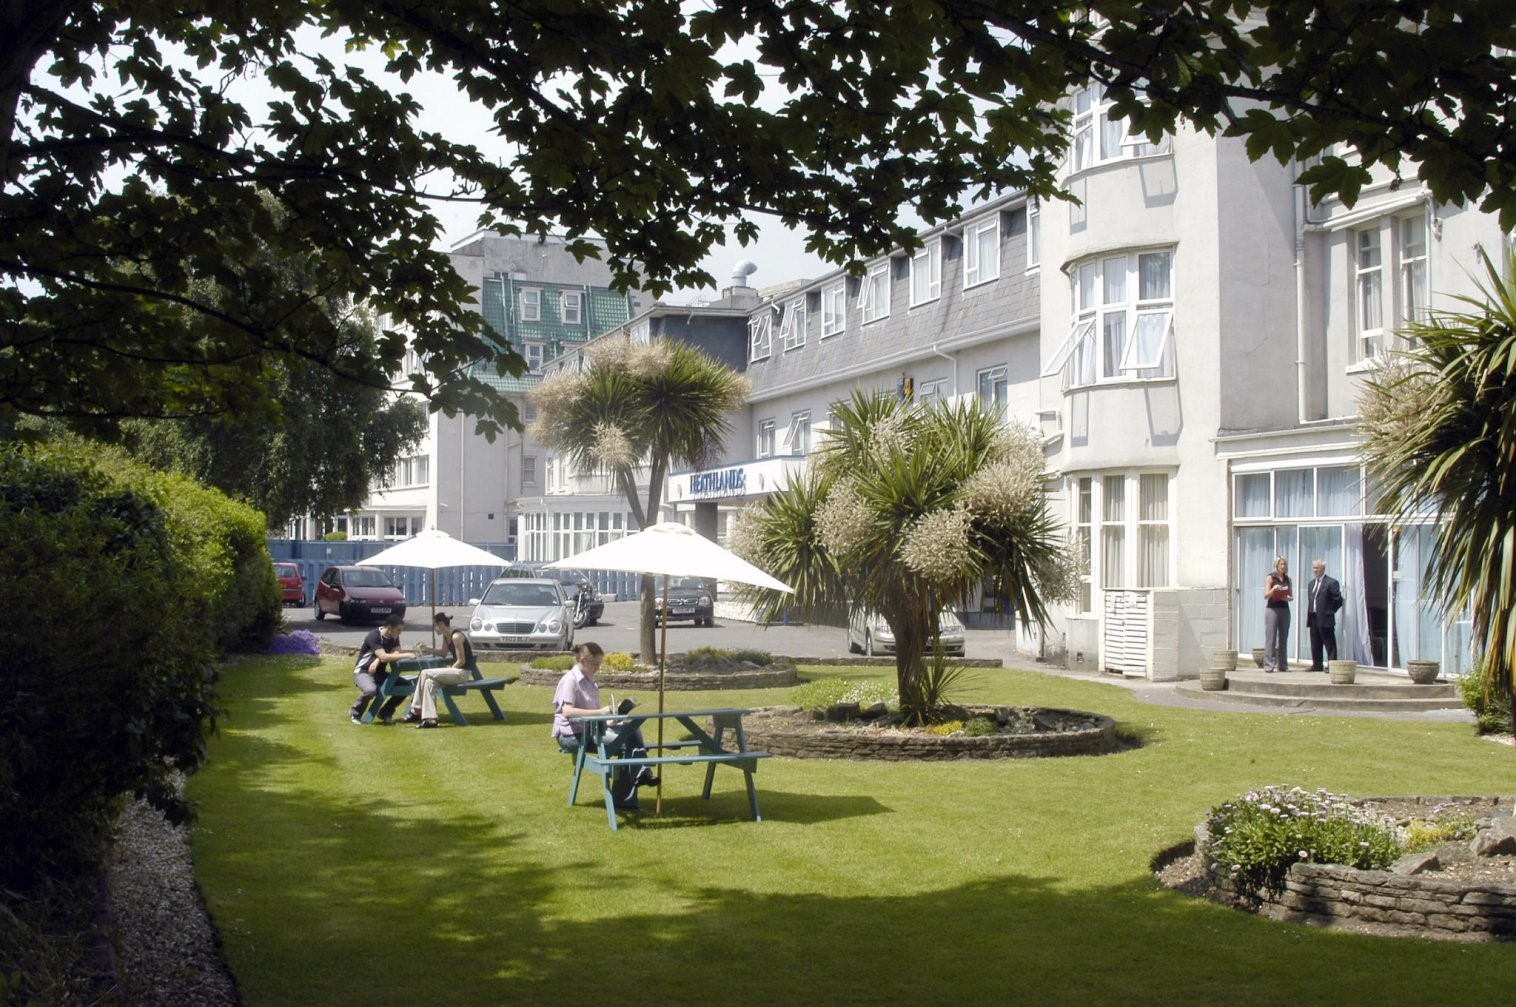 Picture of Heathlands Hotel - Bournemouth